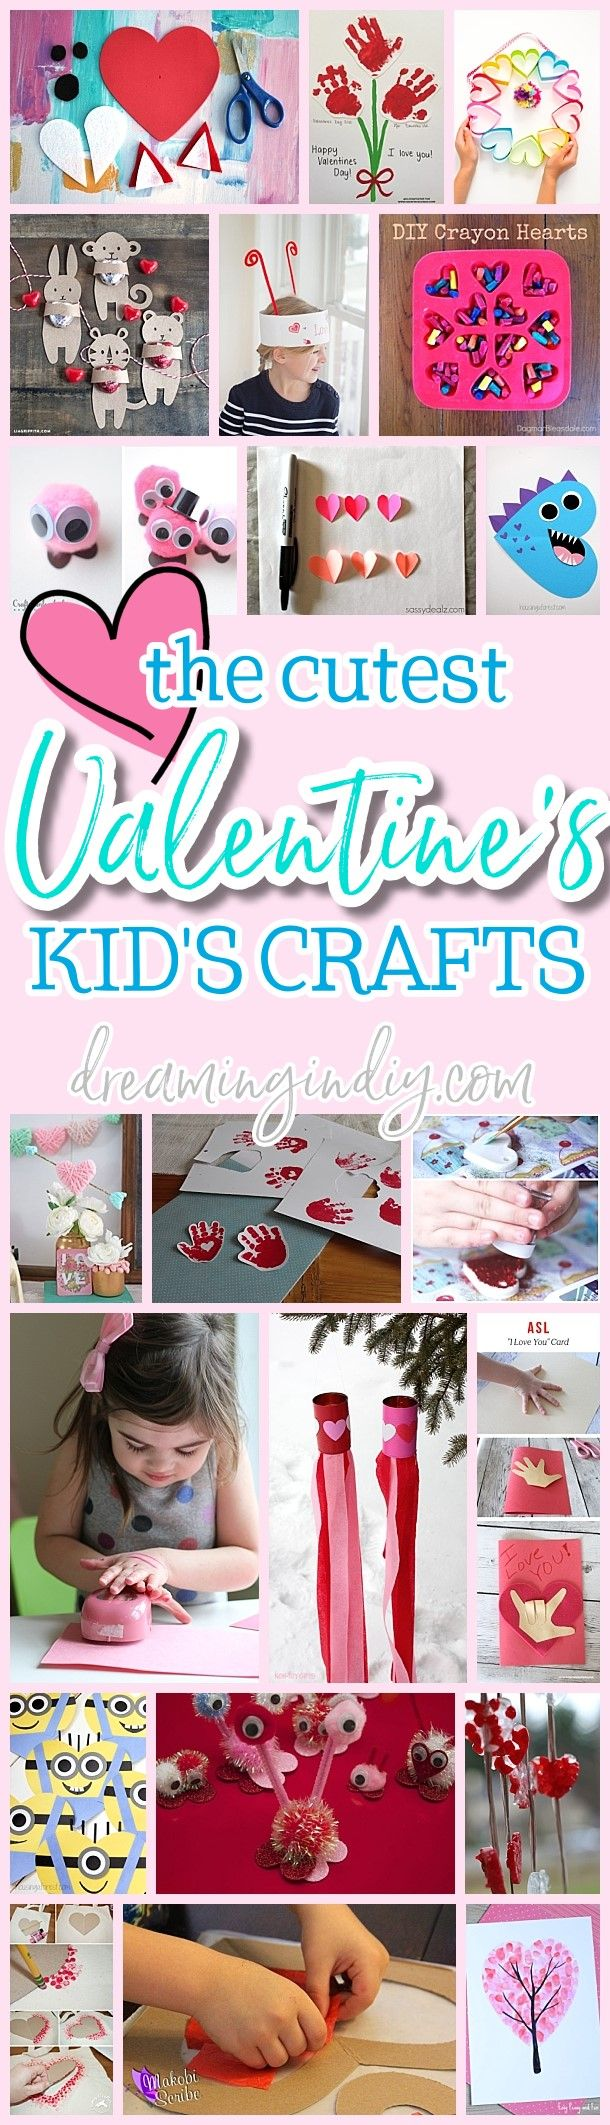 Fun and Easy Valentines Day Kids Paper Crafts Art Projects and Activities - Easy Heart Love Pink and Red tutorials for your budding little artists via Dreaming in DIY #valentinescraftsforkids #valentinespartycrafts #valentinesparty #kidsvalentinecrafts #valentinecrafts #valentinesday #valentines #kidscrafts #easyvalentinescrafts